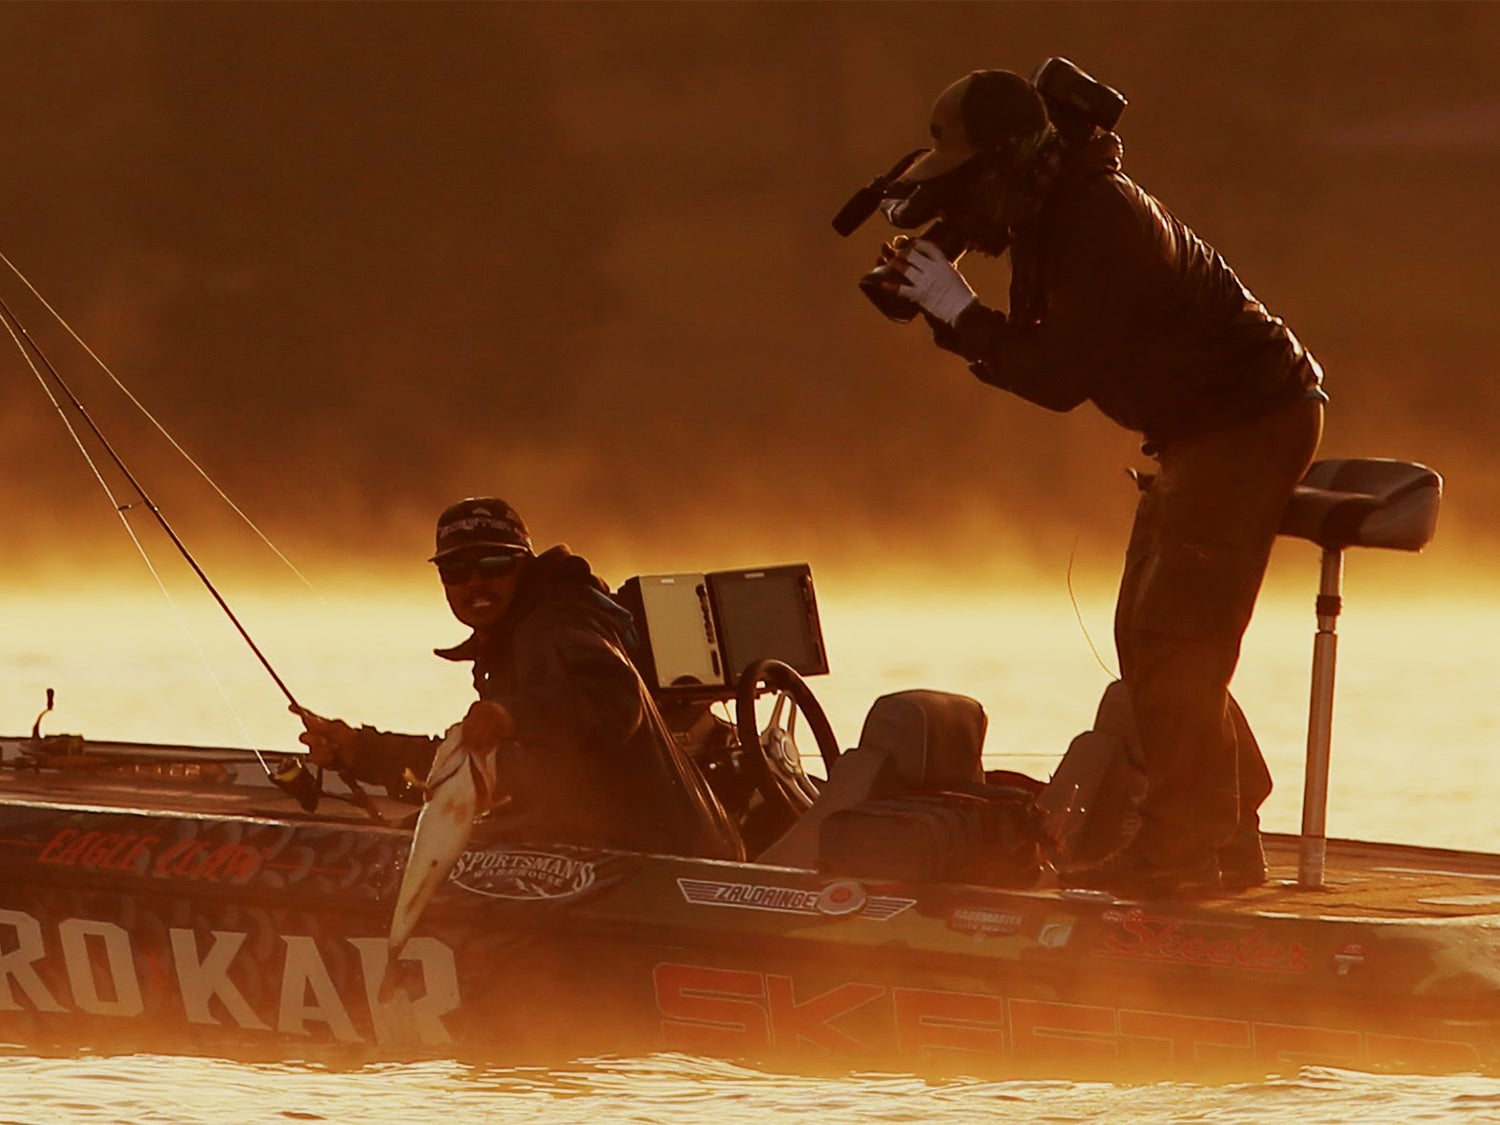 A bass angler pulling a fish into a boat while a camera man films.